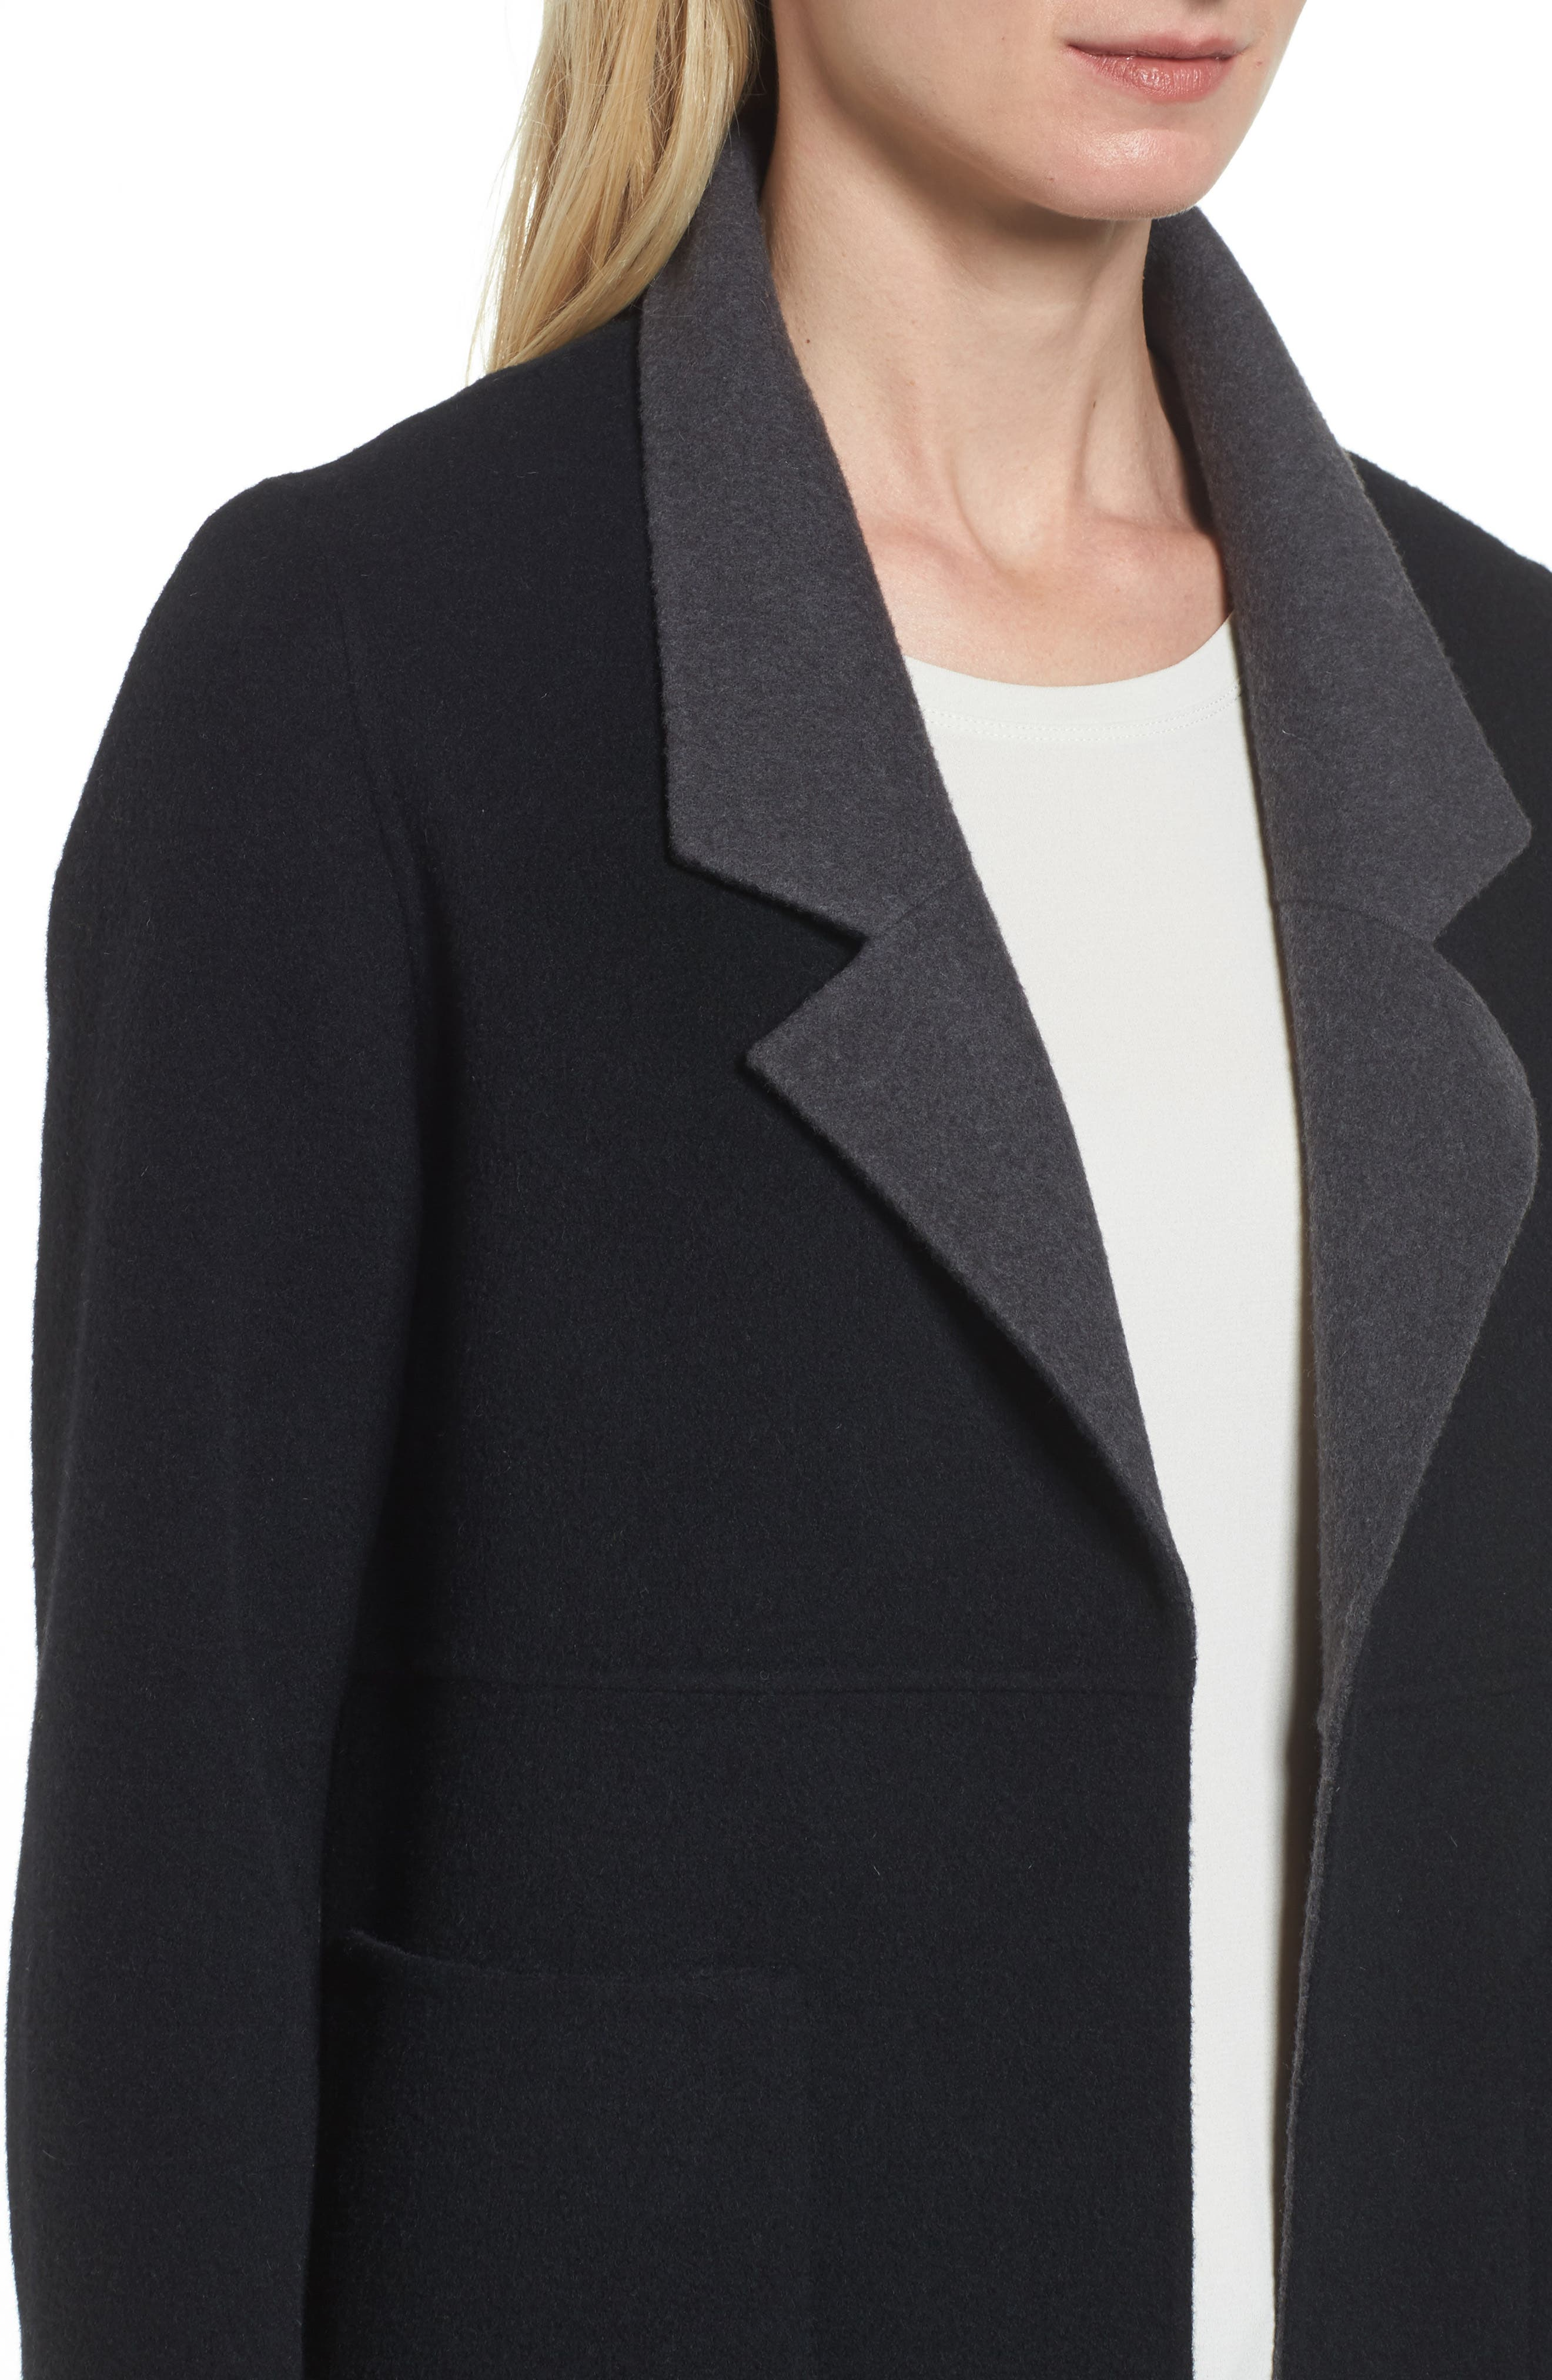 Double Face Brushed Wool Notch Collar Jacket,                             Alternate thumbnail 4, color,                             010